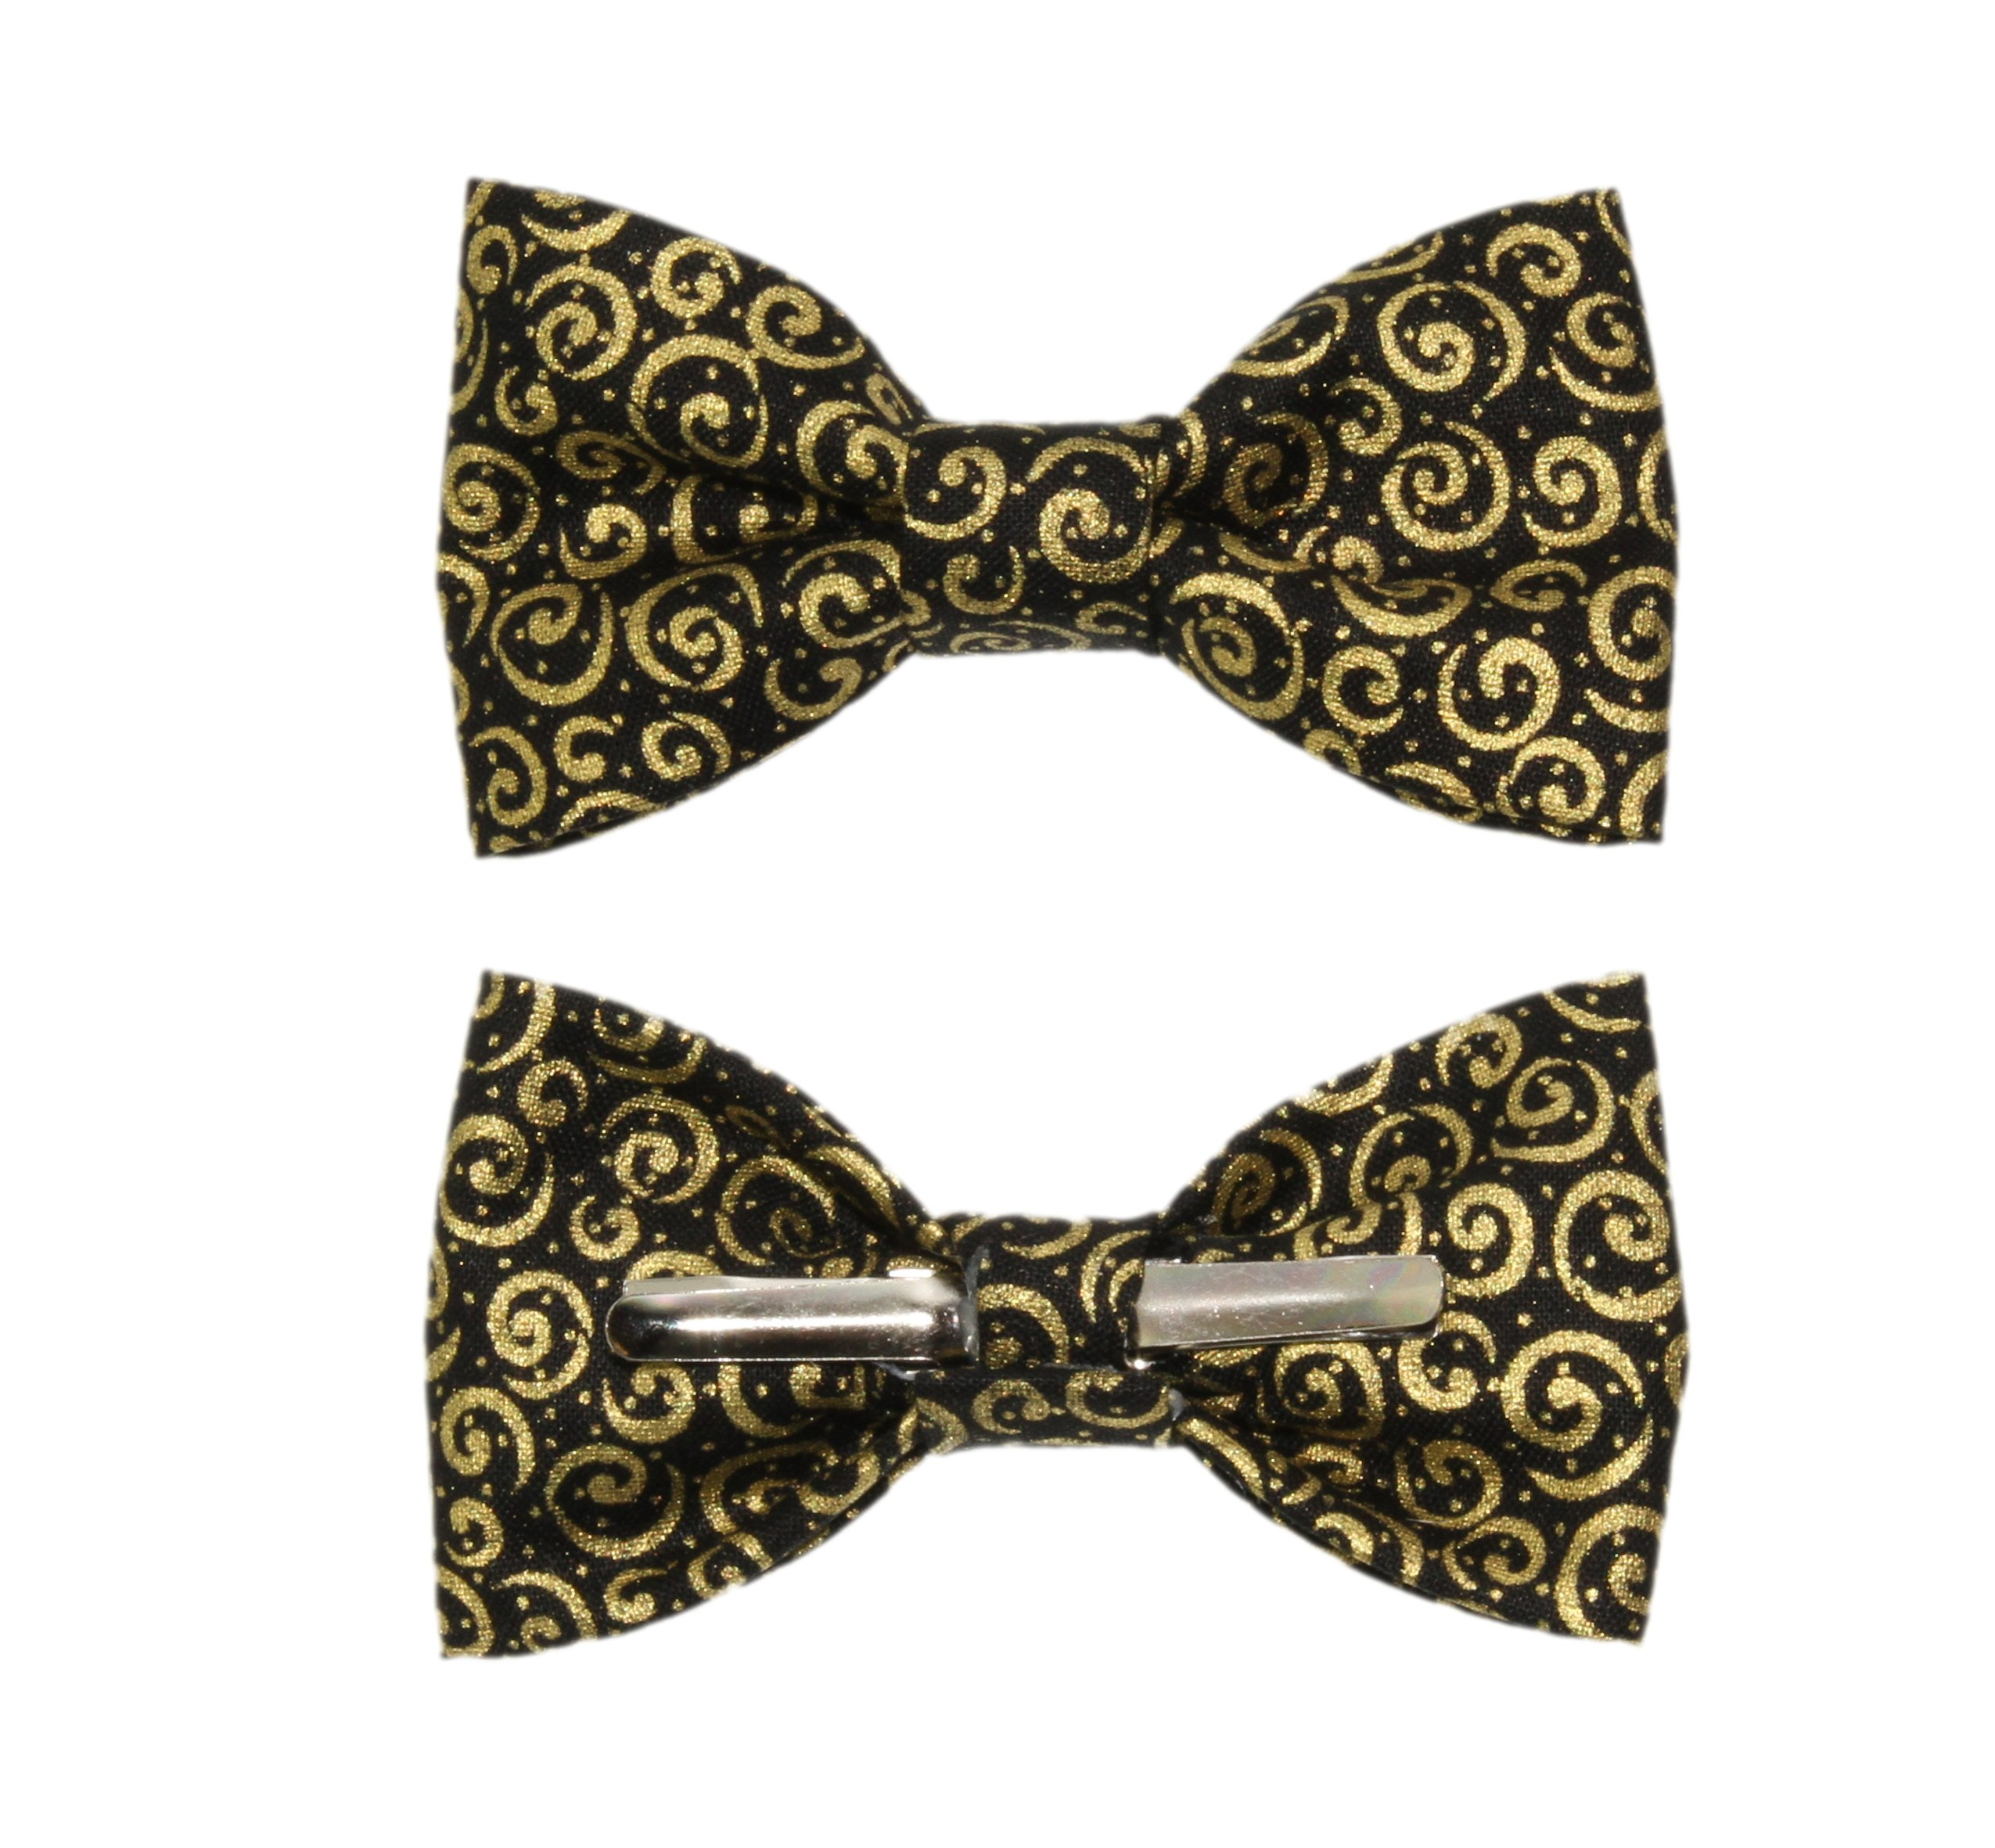 Toddler Boy 4T 5T Black With Gold Scrolls Clip On Cotton Bow Tie by amy2004marie by amy2004marie (Image #1)